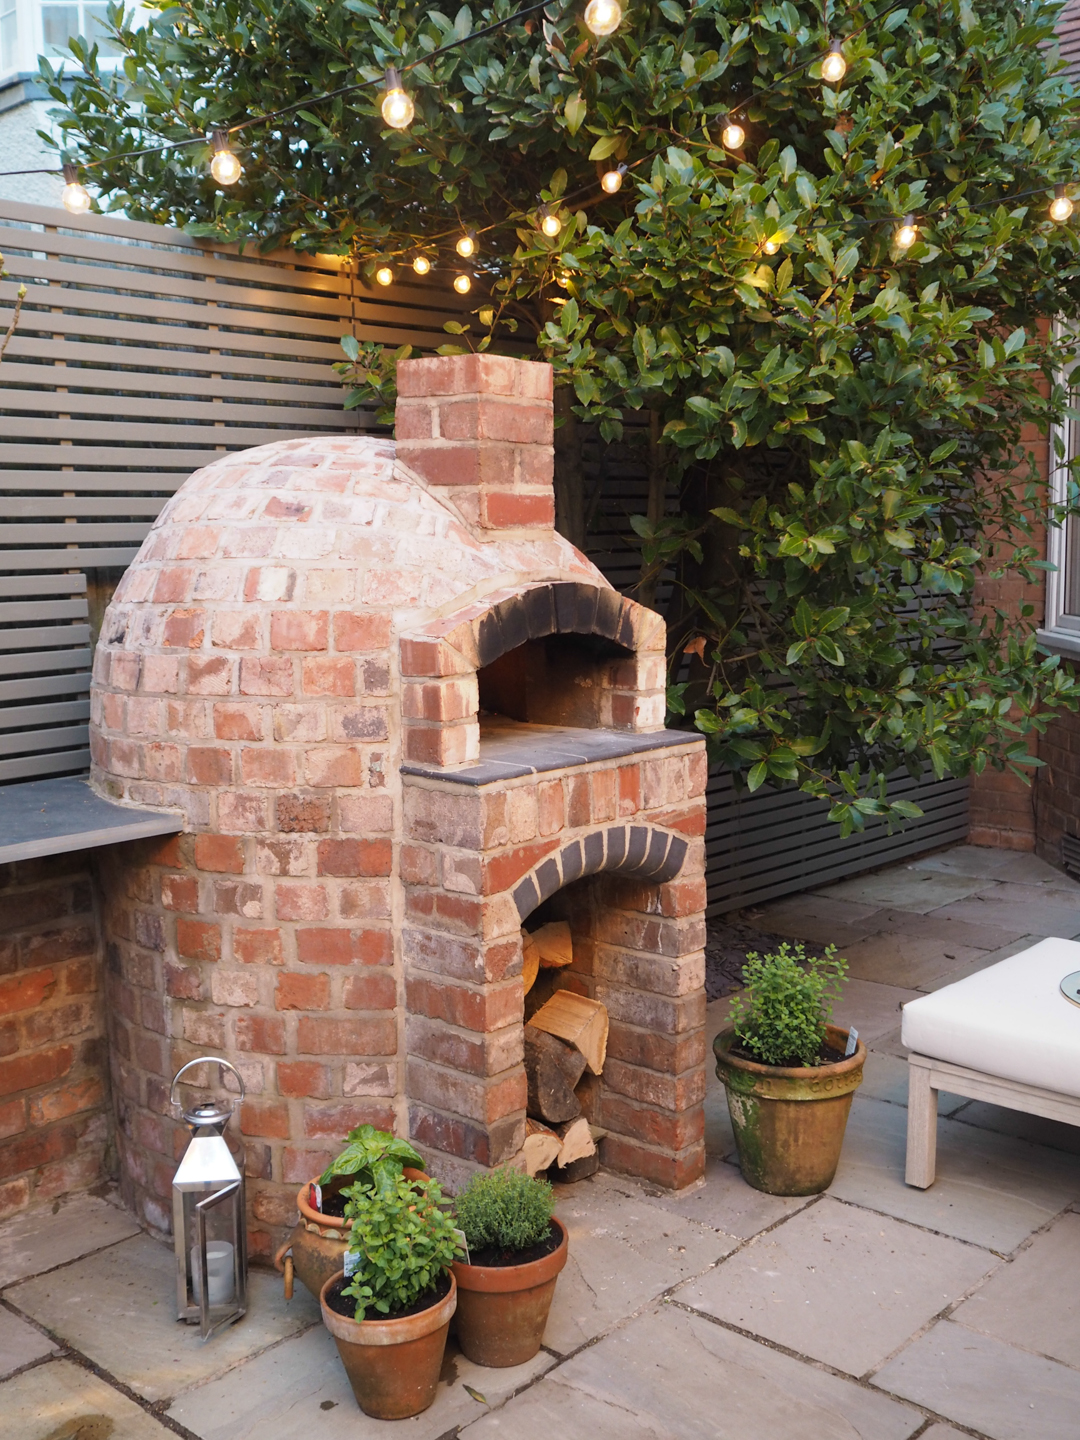 Installing a wood fired pizza oven in our garden - The ... on Outdoor Patio With Pizza Oven  id=13534